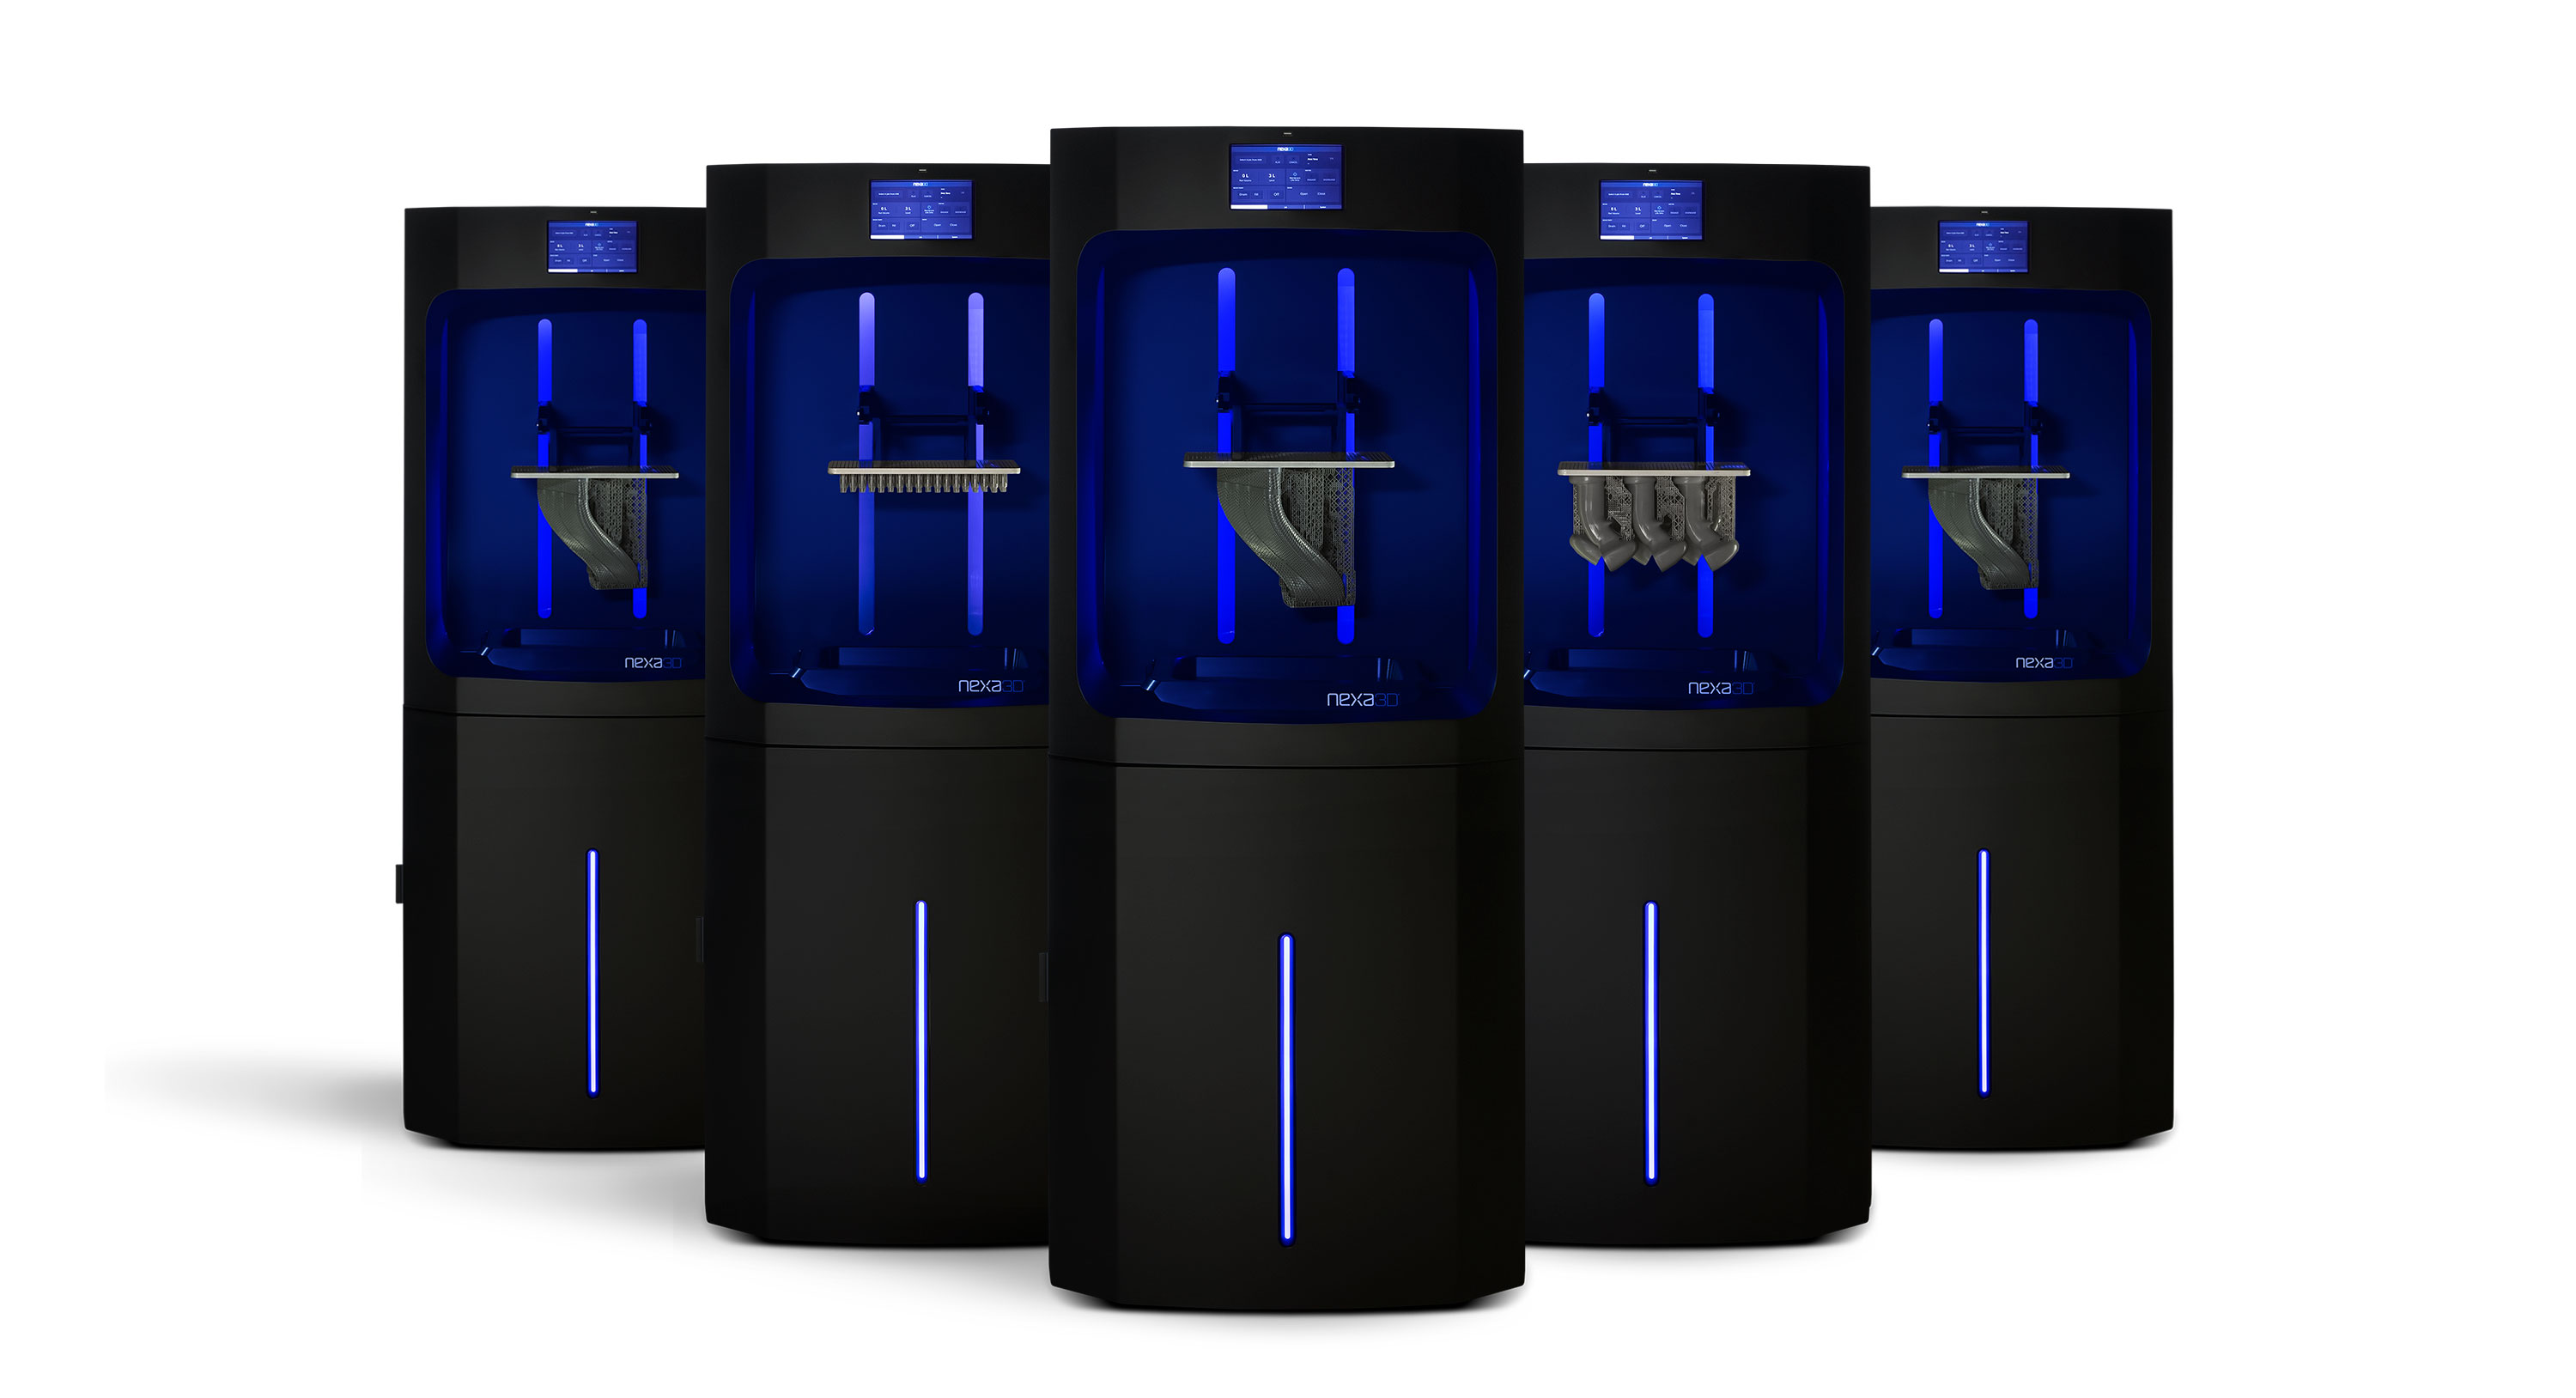 A group of NXE400 3D printers. Photo via Nexa3D.